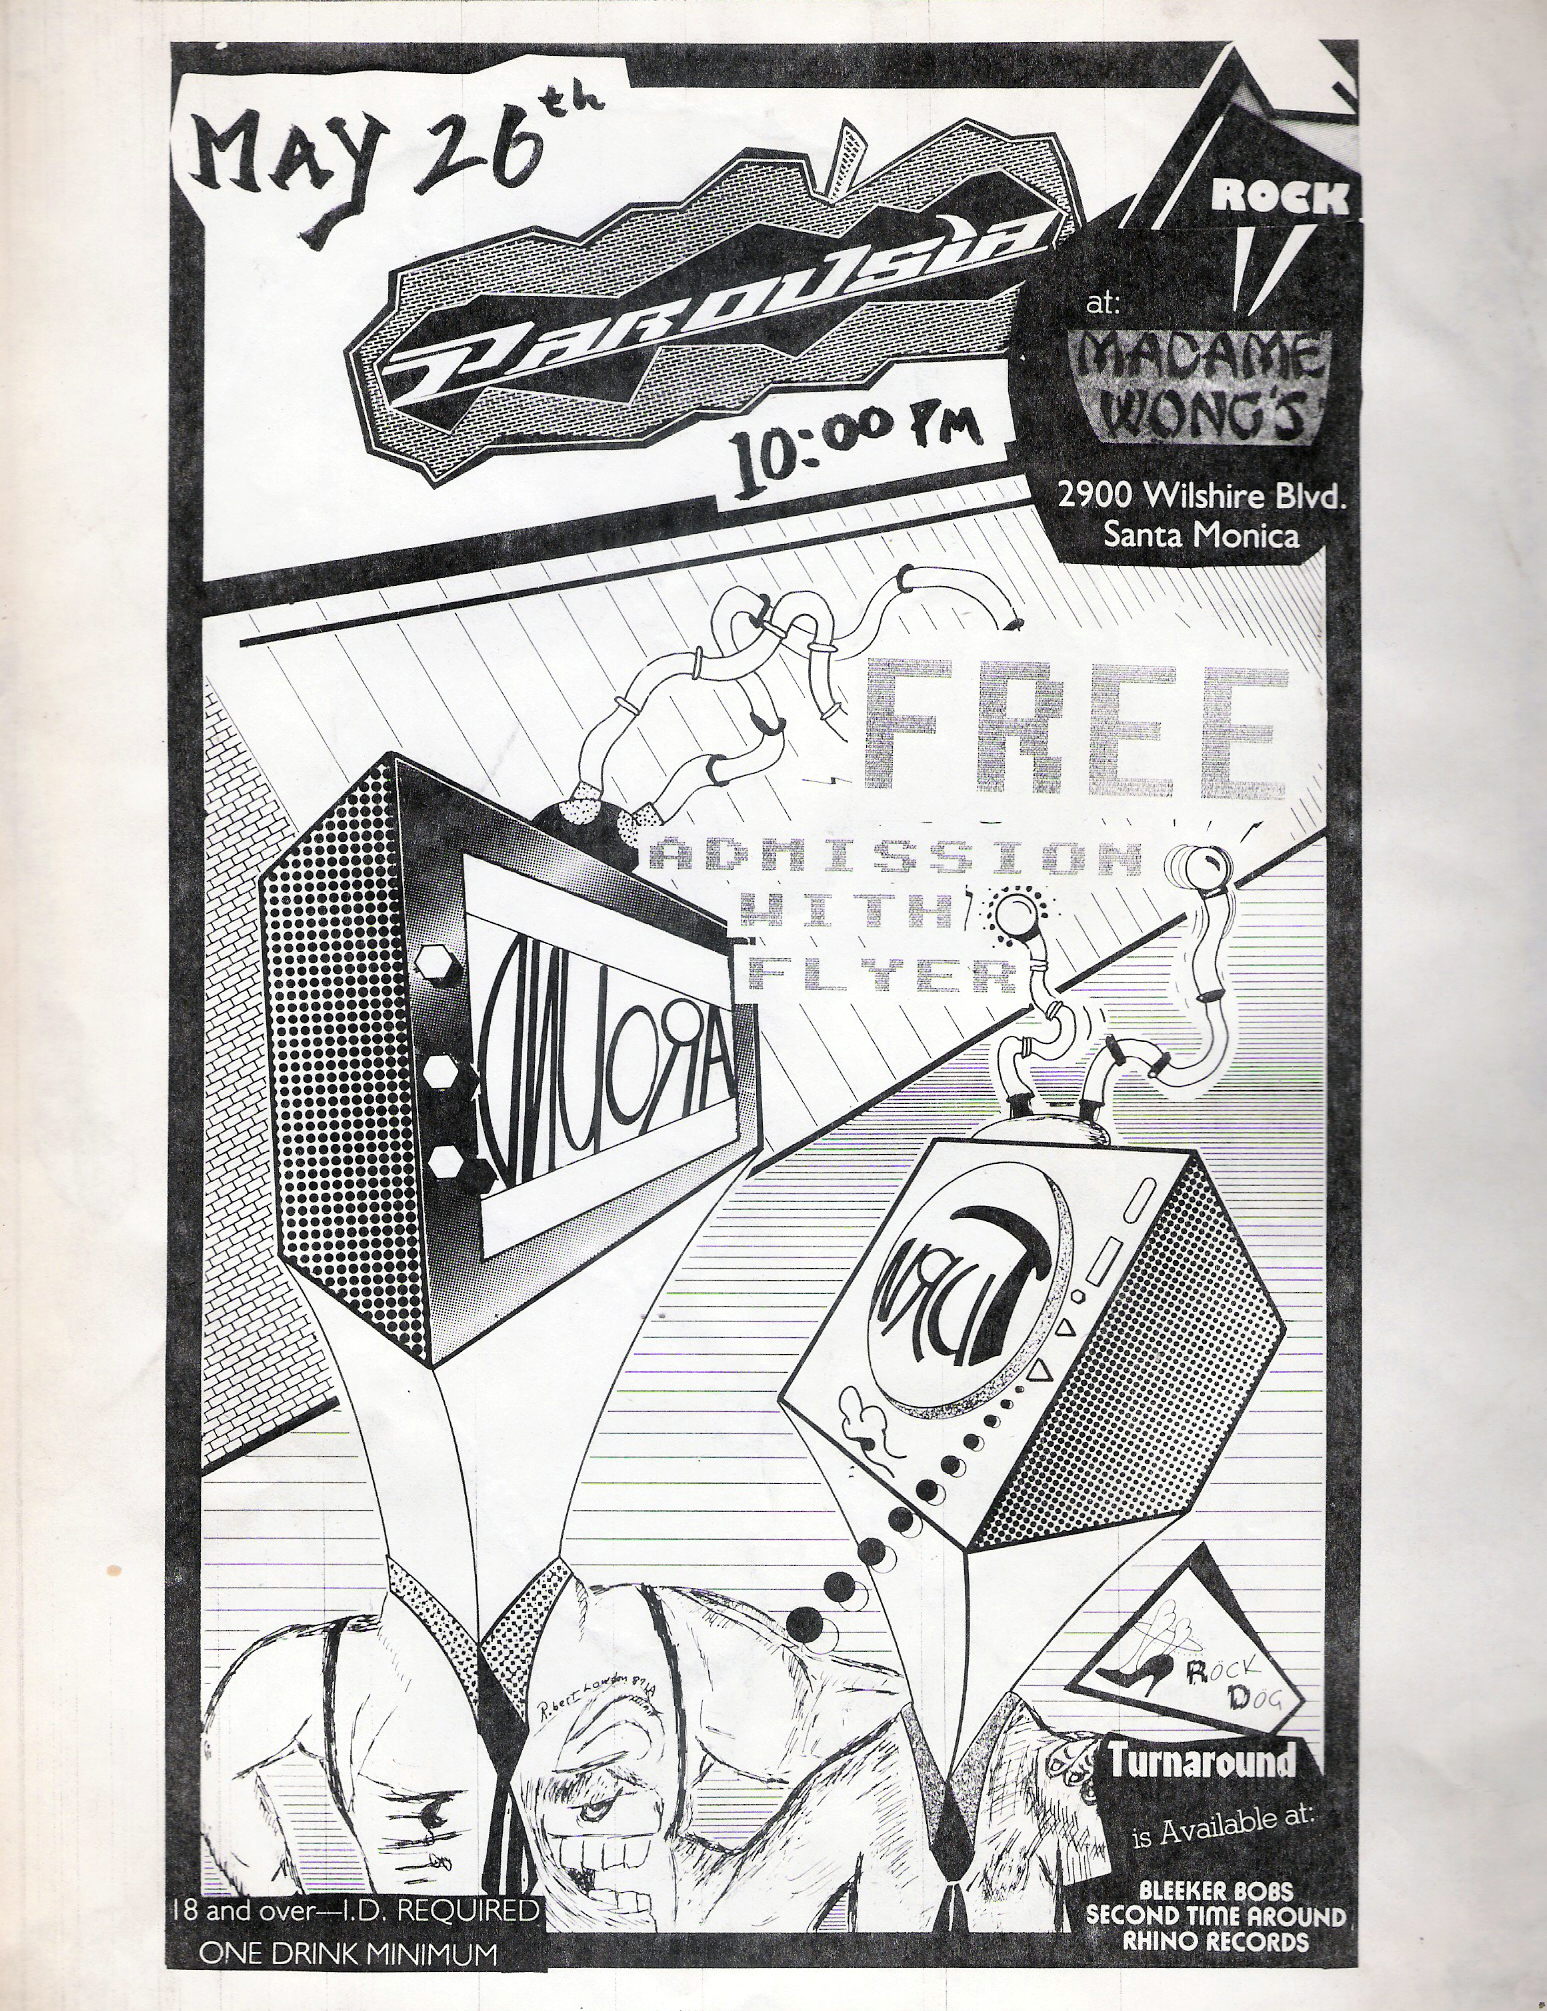 Flyer - Parousia at Madame Wong's West - May 26, 1988